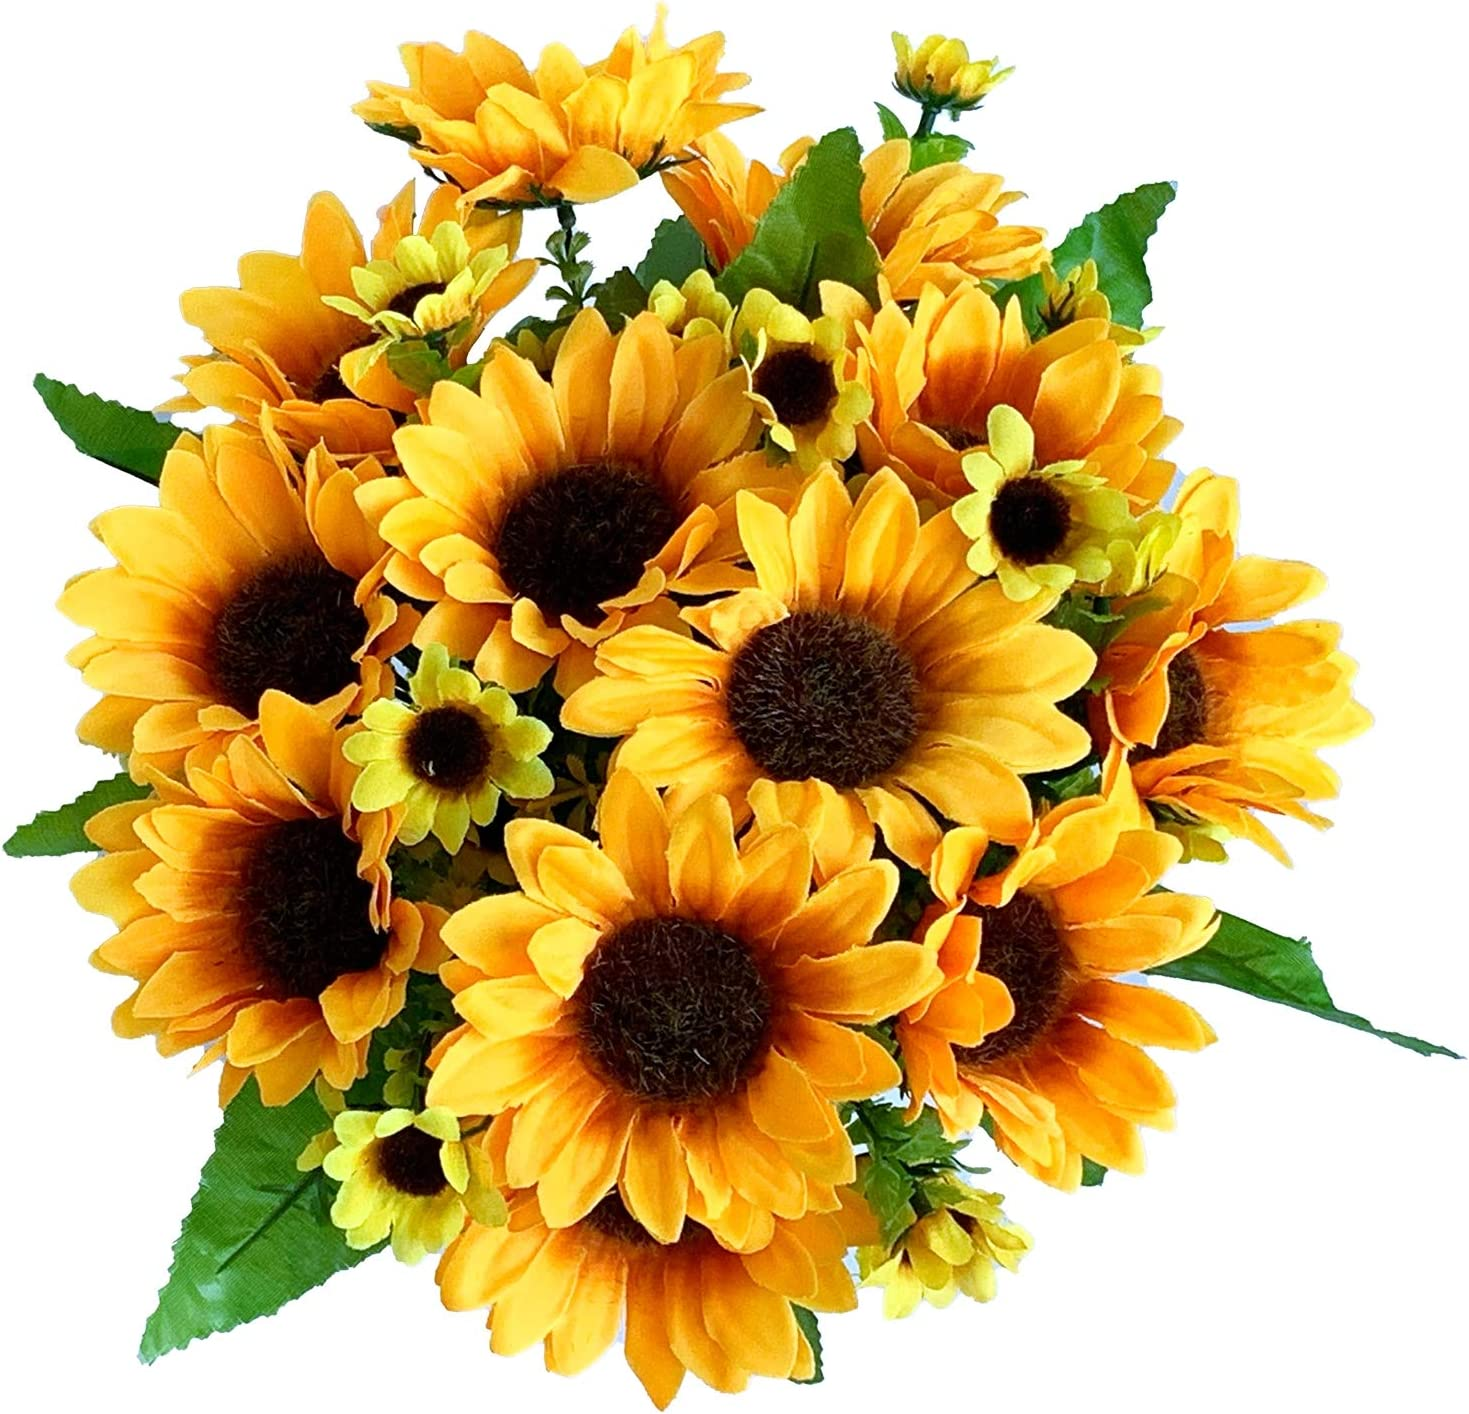 LAPONEE Artificial Sunflower Bouquet, 7 Flowers Per Bunch, 2 Bunches Per Pack - Fake Flowers for Wedding Decoration